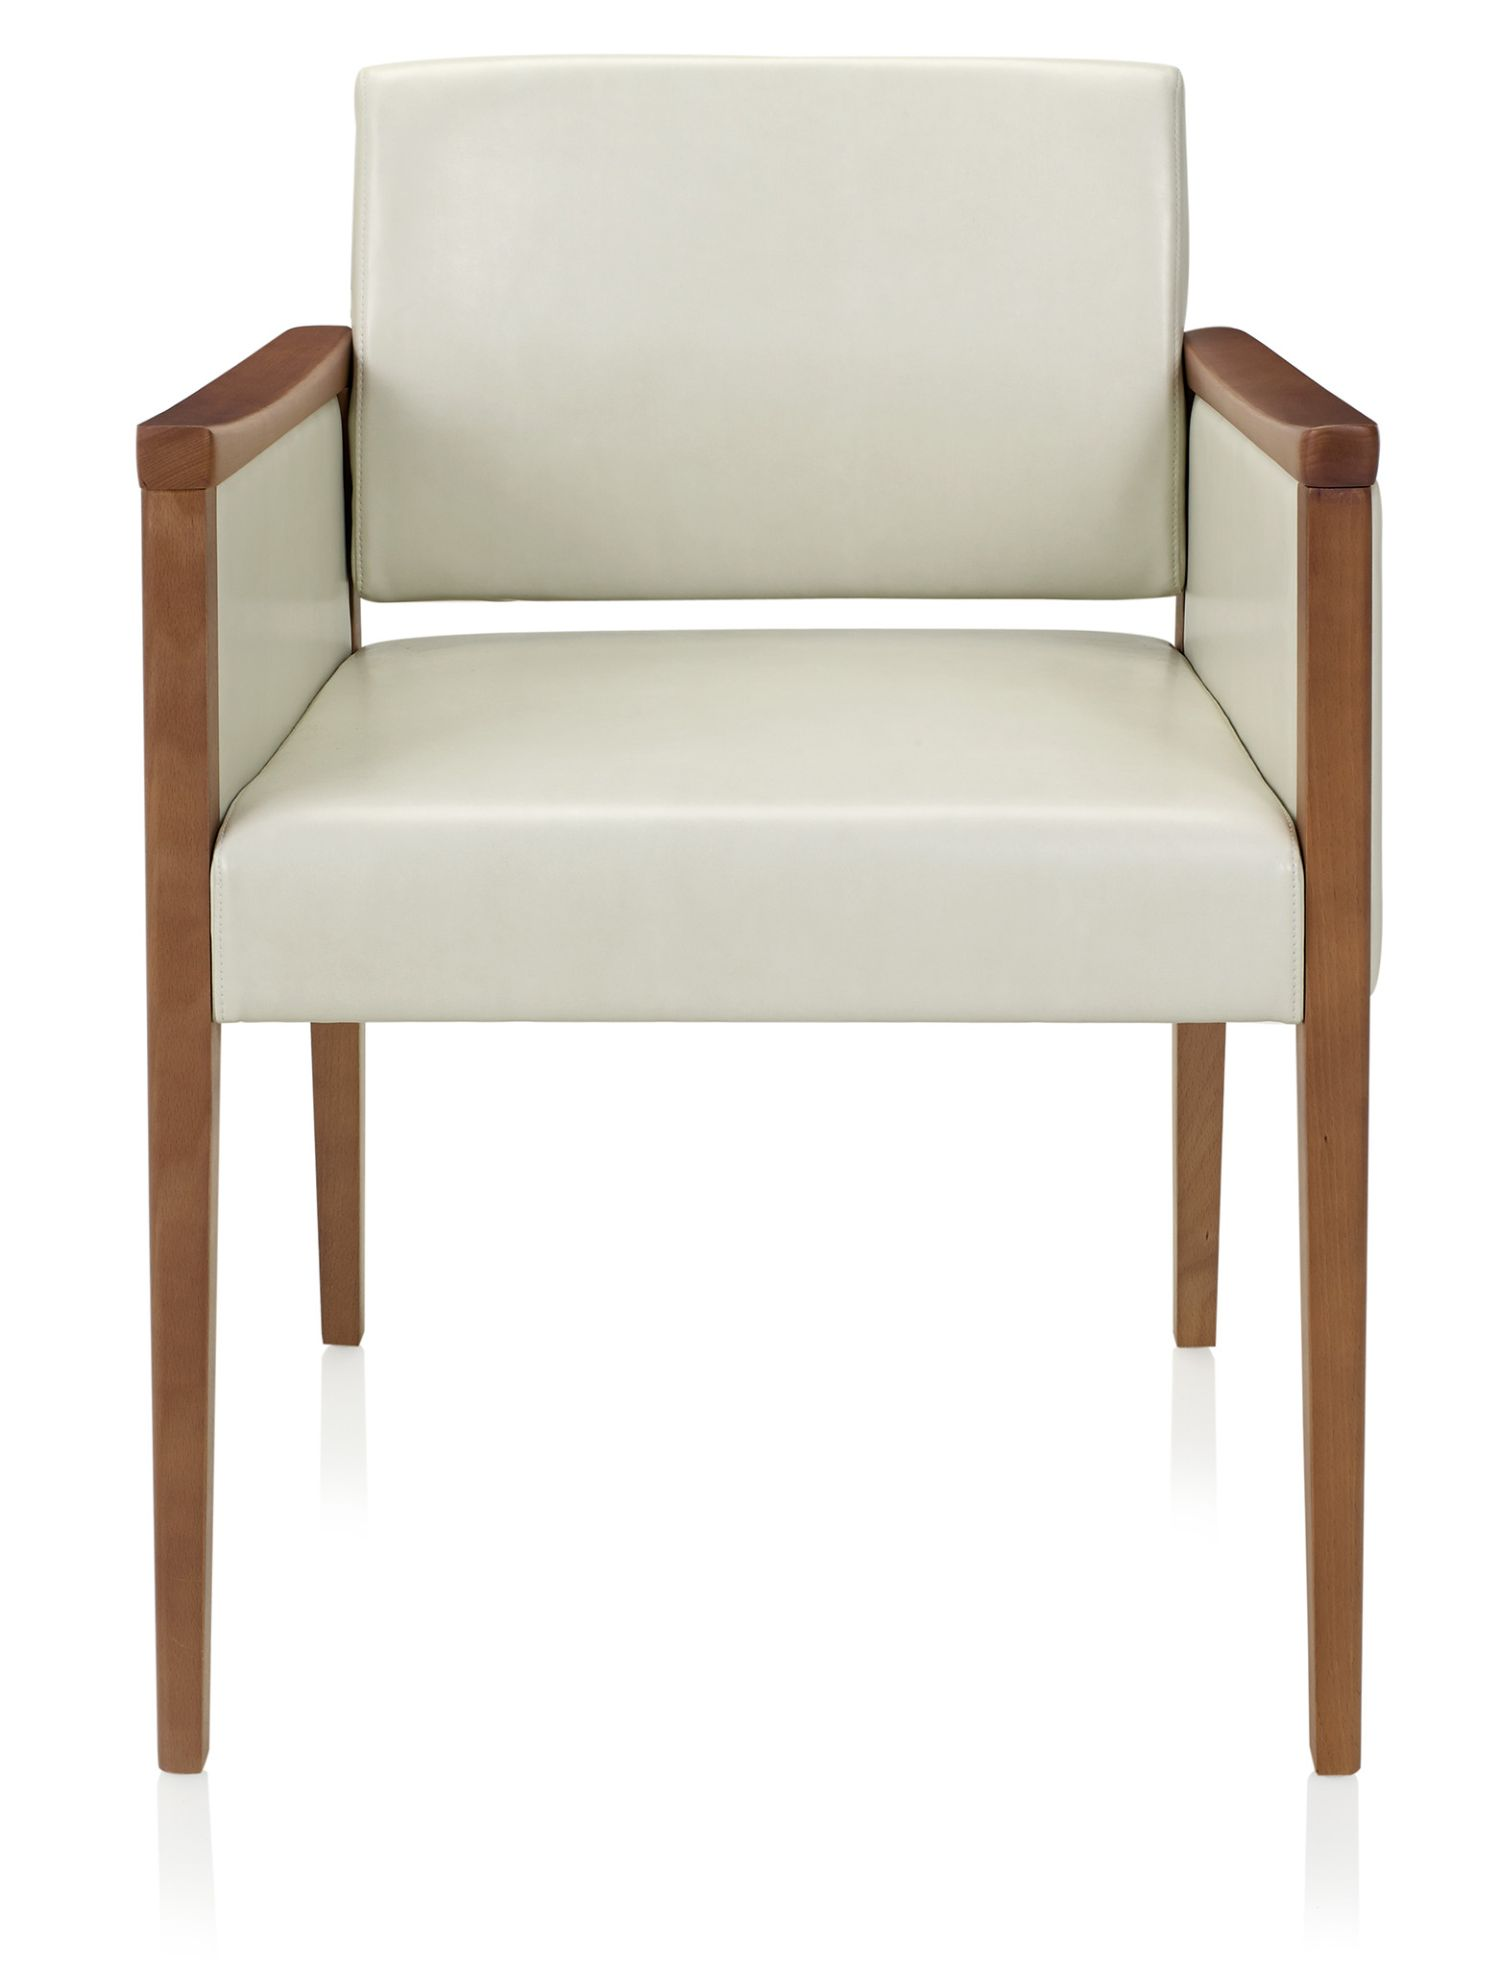 ki affina closed arm guest chair - front